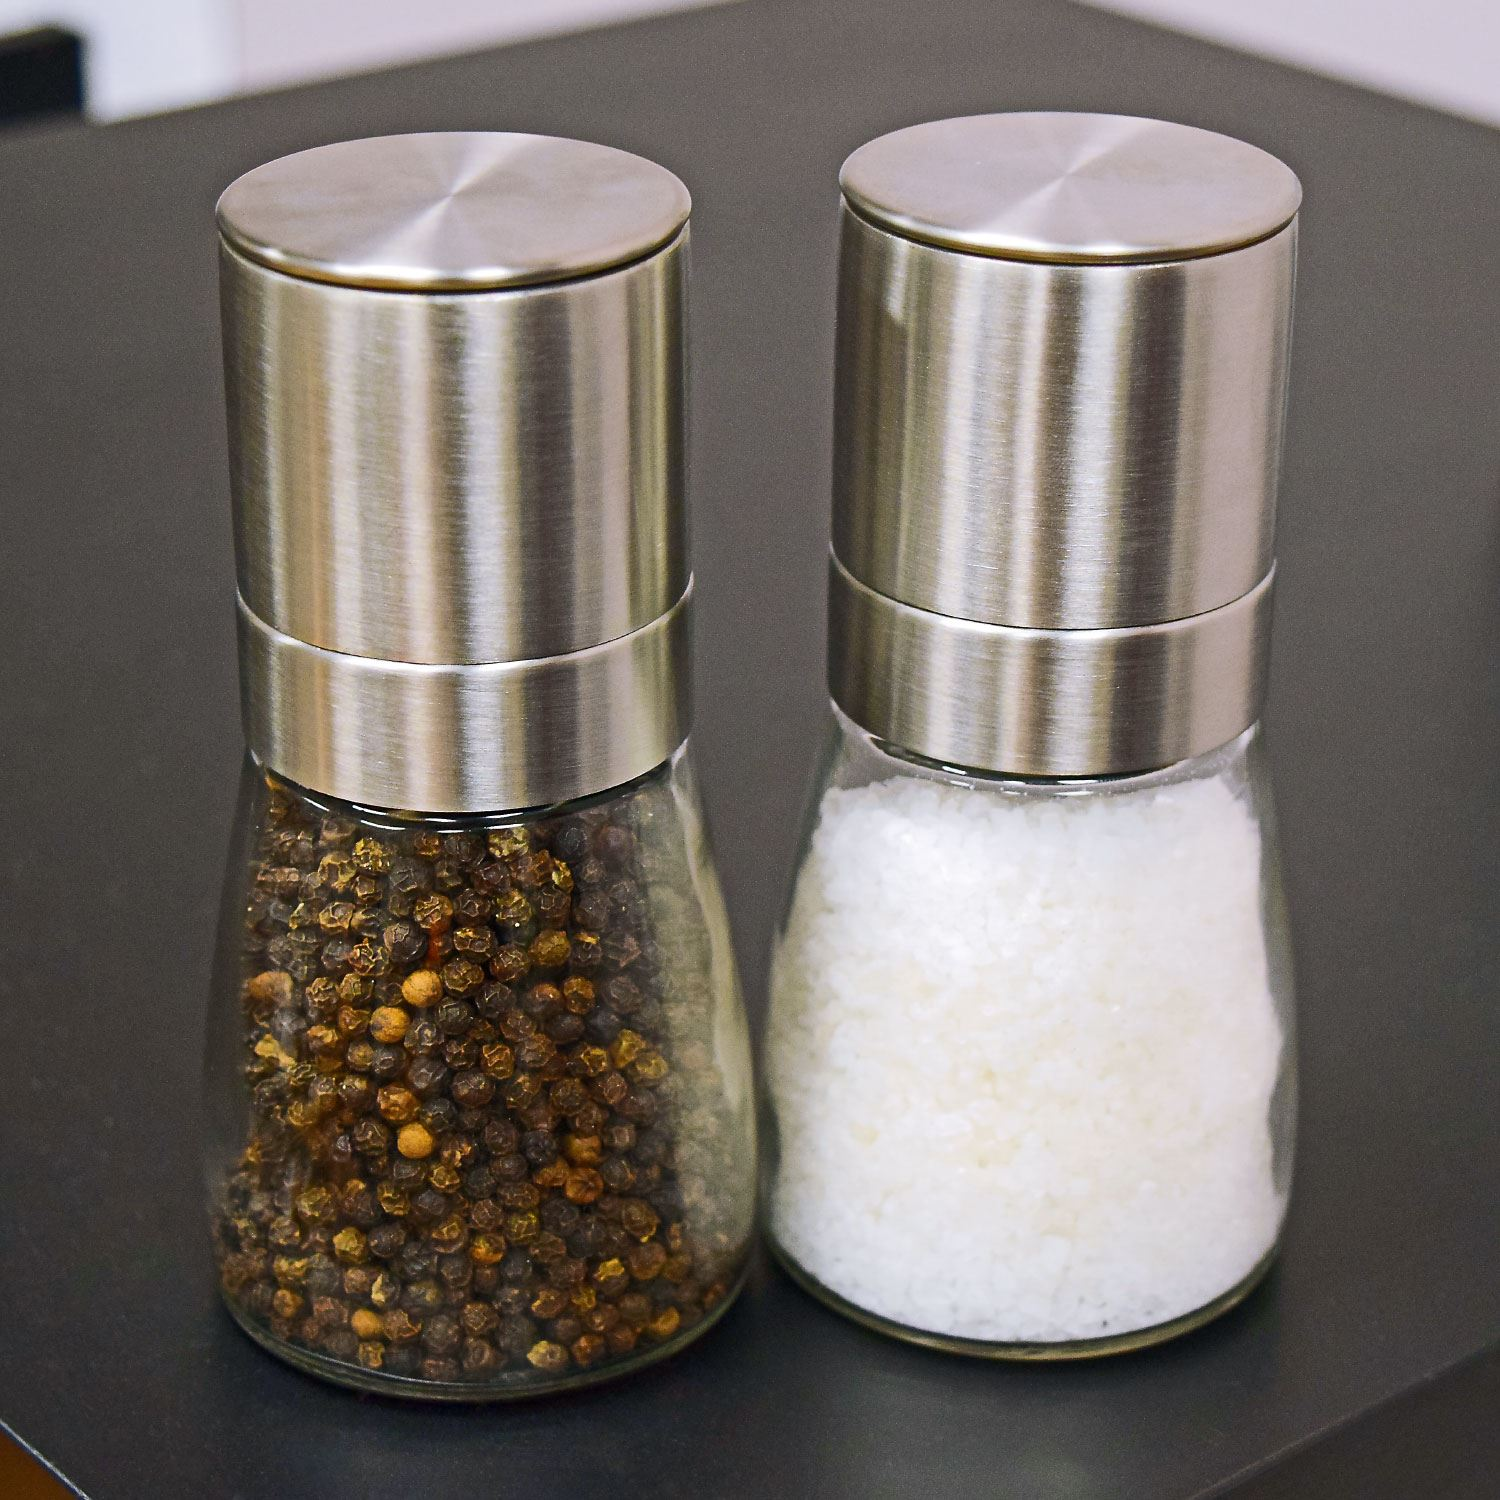 Salt pepper grinder pc set spice herp glass muller hand